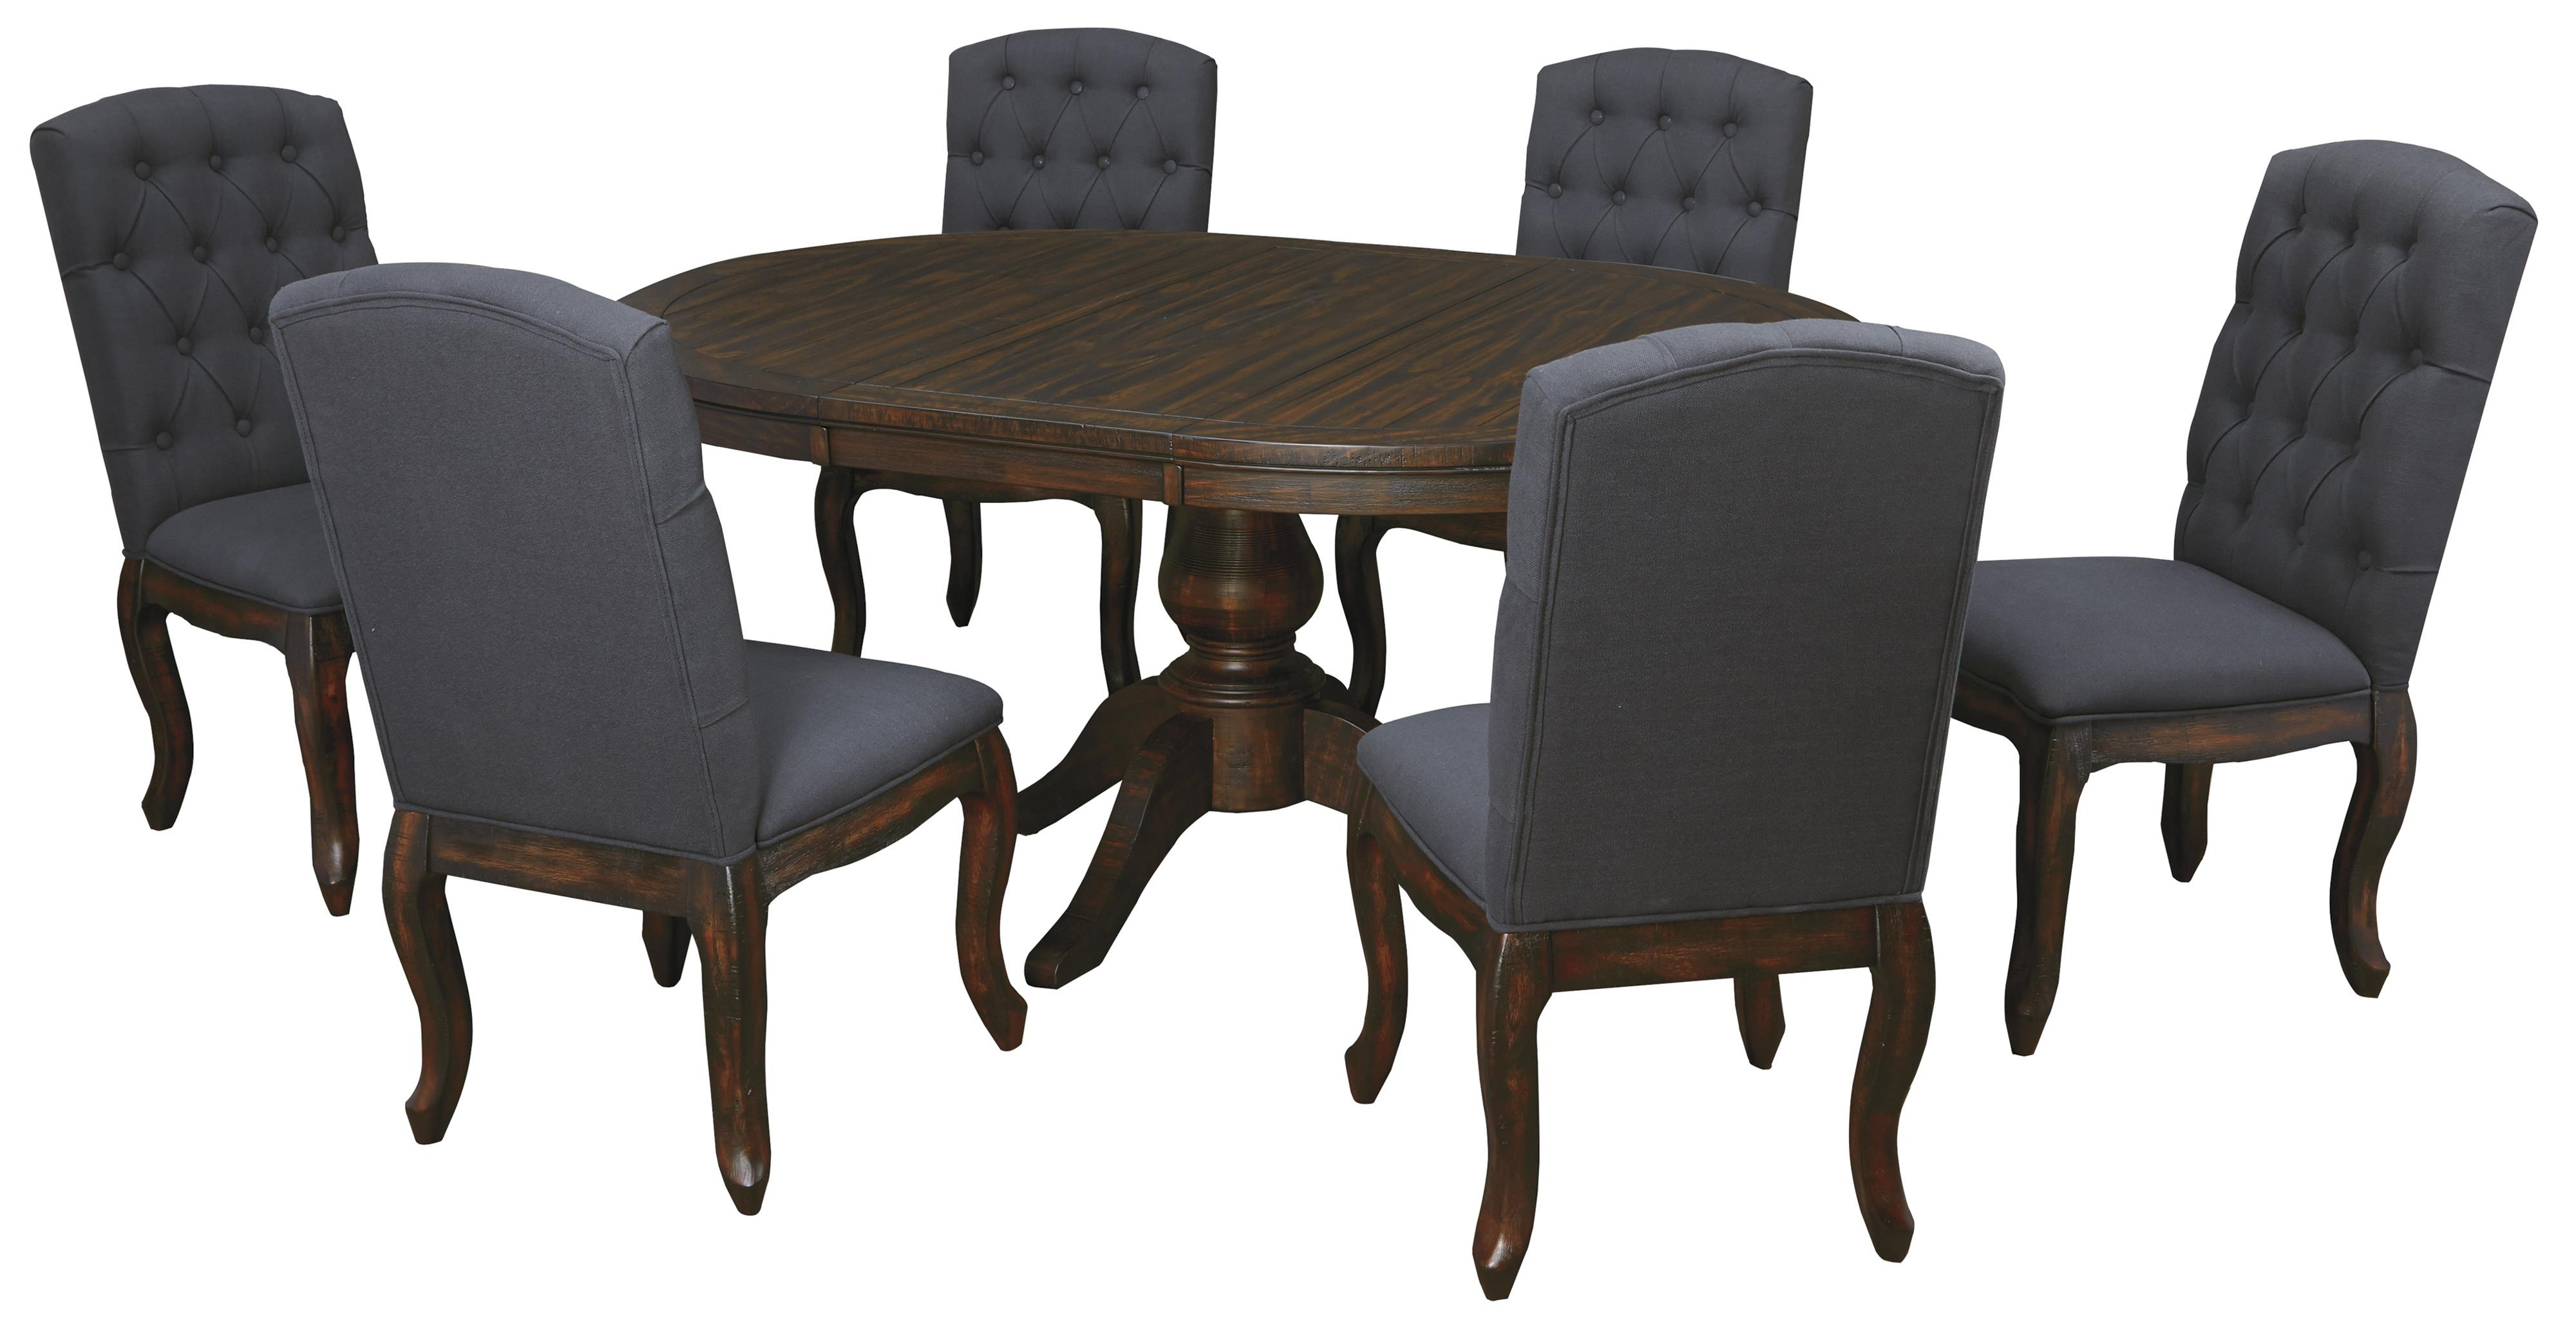 7 Piece Oval Dining Table Set With Upholstered Side Chairs Inside Newest Craftsman 9 Piece Extension Dining Sets With Uph Side Chairs (Gallery 20 of 25)